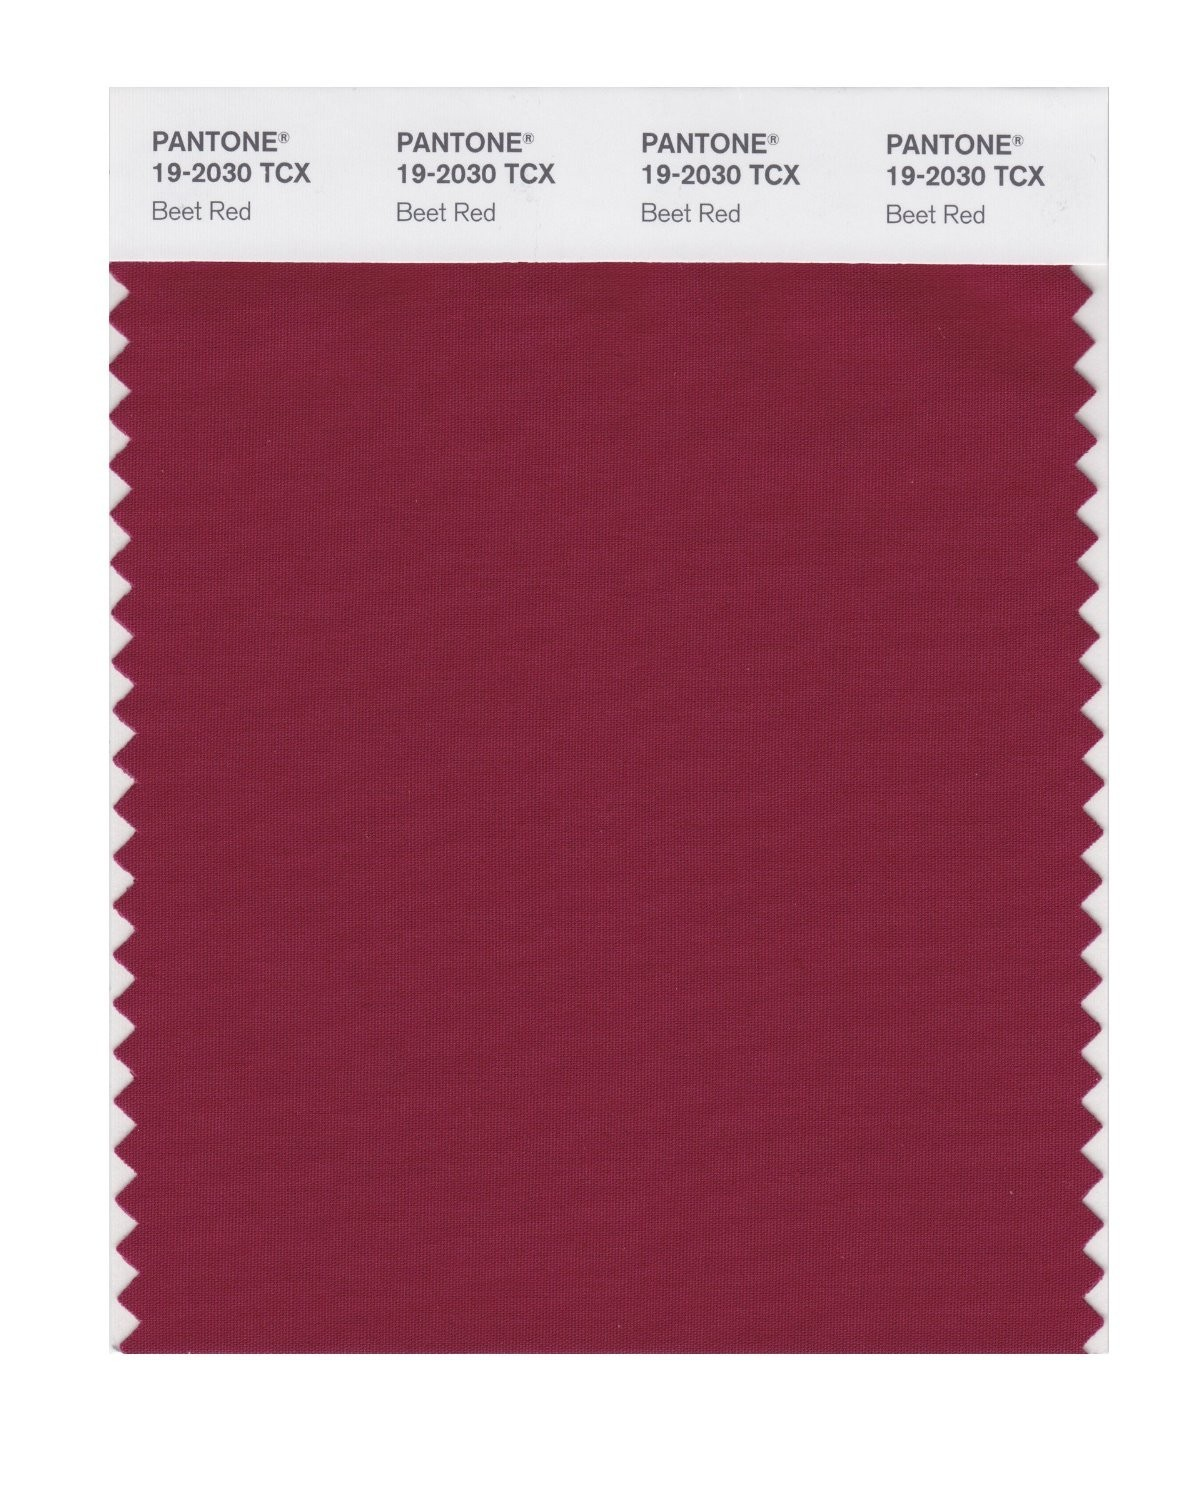 Pantone 19-2030 TCX Swatch Card Beet Red